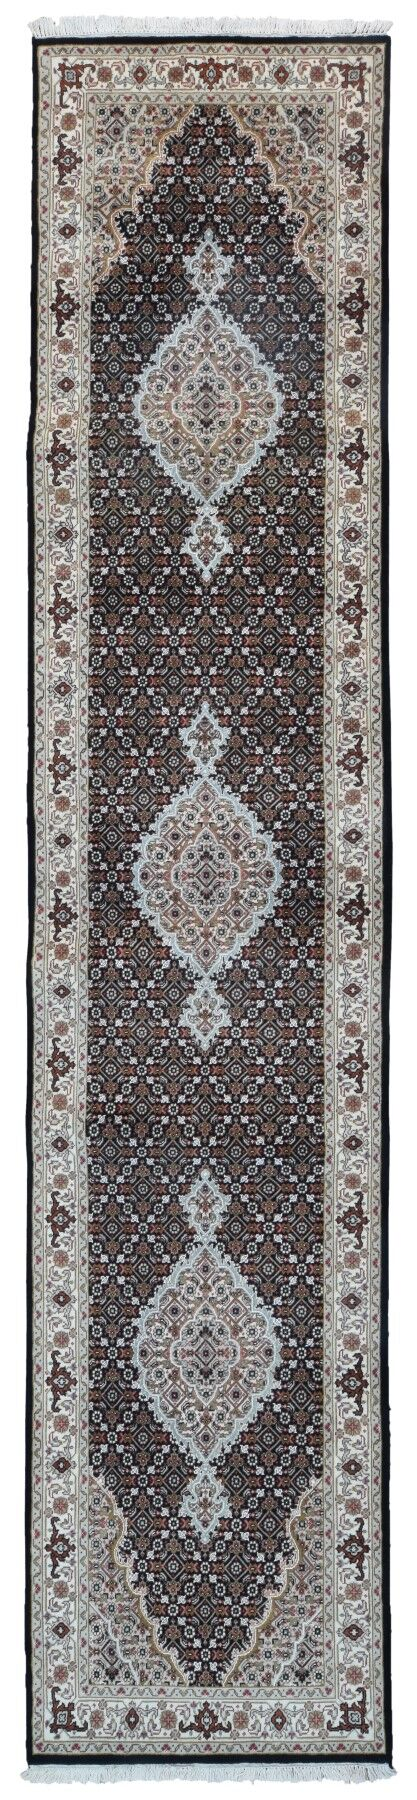 One-of-a-Kind Joanna Oriental Hand-Knotted Beige/Black Area Rug